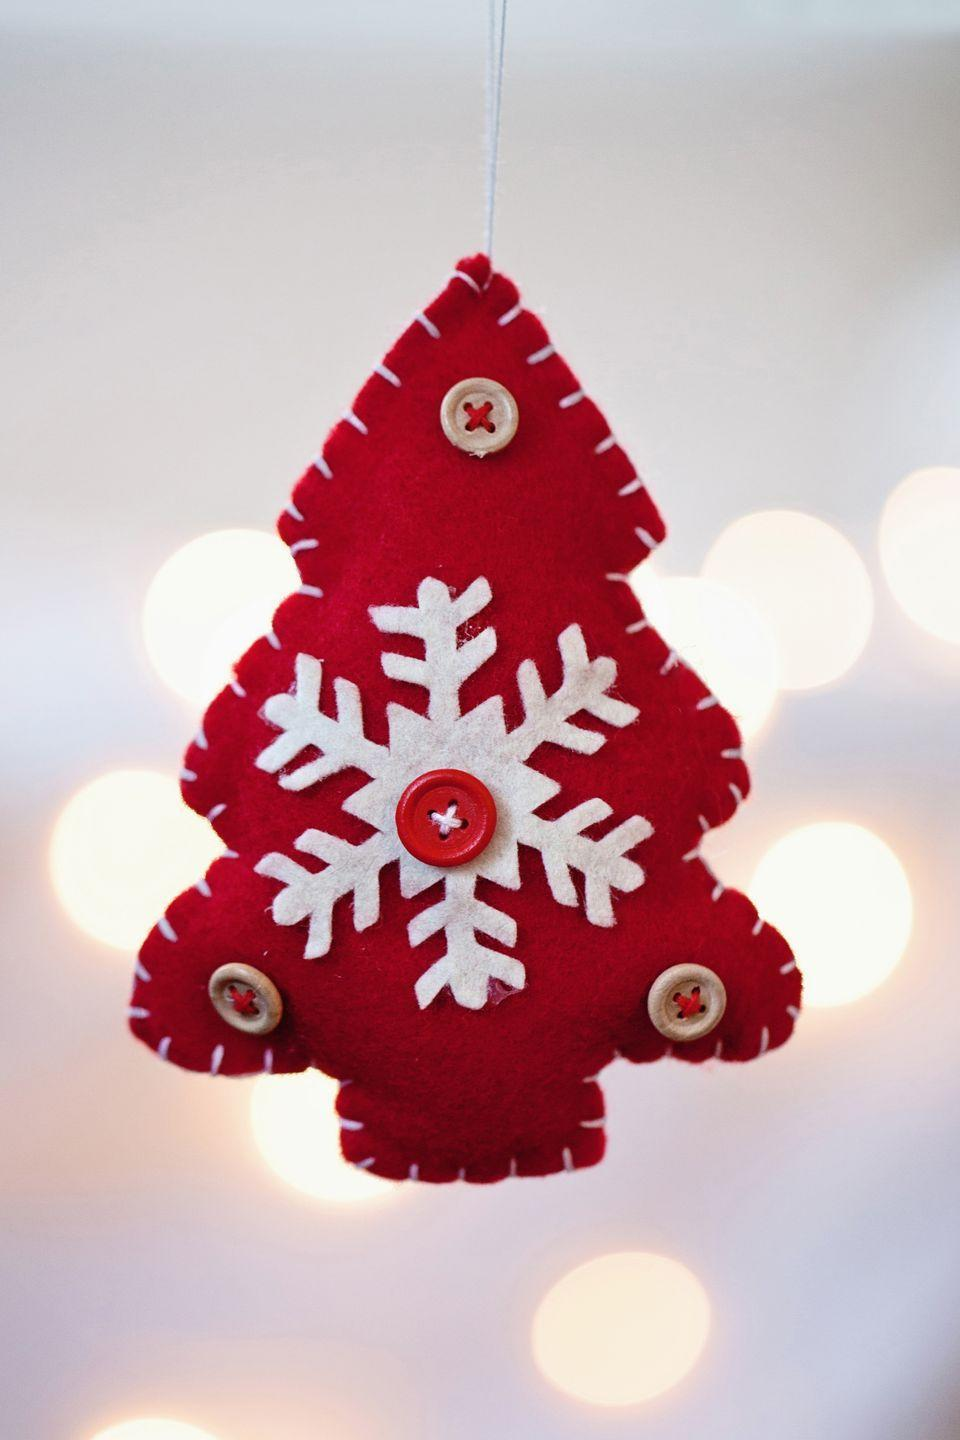 """<p>Corral your most Pinterest-obsessed friends for an afternoon of crafting <a href=""""https://www.countryliving.com/diy-crafts/how-to/g3872/christmas-card-ideas/"""" rel=""""nofollow noopener"""" target=""""_blank"""" data-ylk=""""slk:holiday cards"""" class=""""link rapid-noclick-resp"""">holiday cards</a>, <a href=""""https://www.countryliving.com/diy-crafts/how-to/g1056/diy-wreath-ideas/"""" rel=""""nofollow noopener"""" target=""""_blank"""" data-ylk=""""slk:wreaths"""" class=""""link rapid-noclick-resp"""">wreaths</a>, and more. Ask each guest to bring her favorite craft supplies so you can draw from a large collection. Don't forget to set out snacks and cocktails—crafting can really work up an appetite!</p>"""